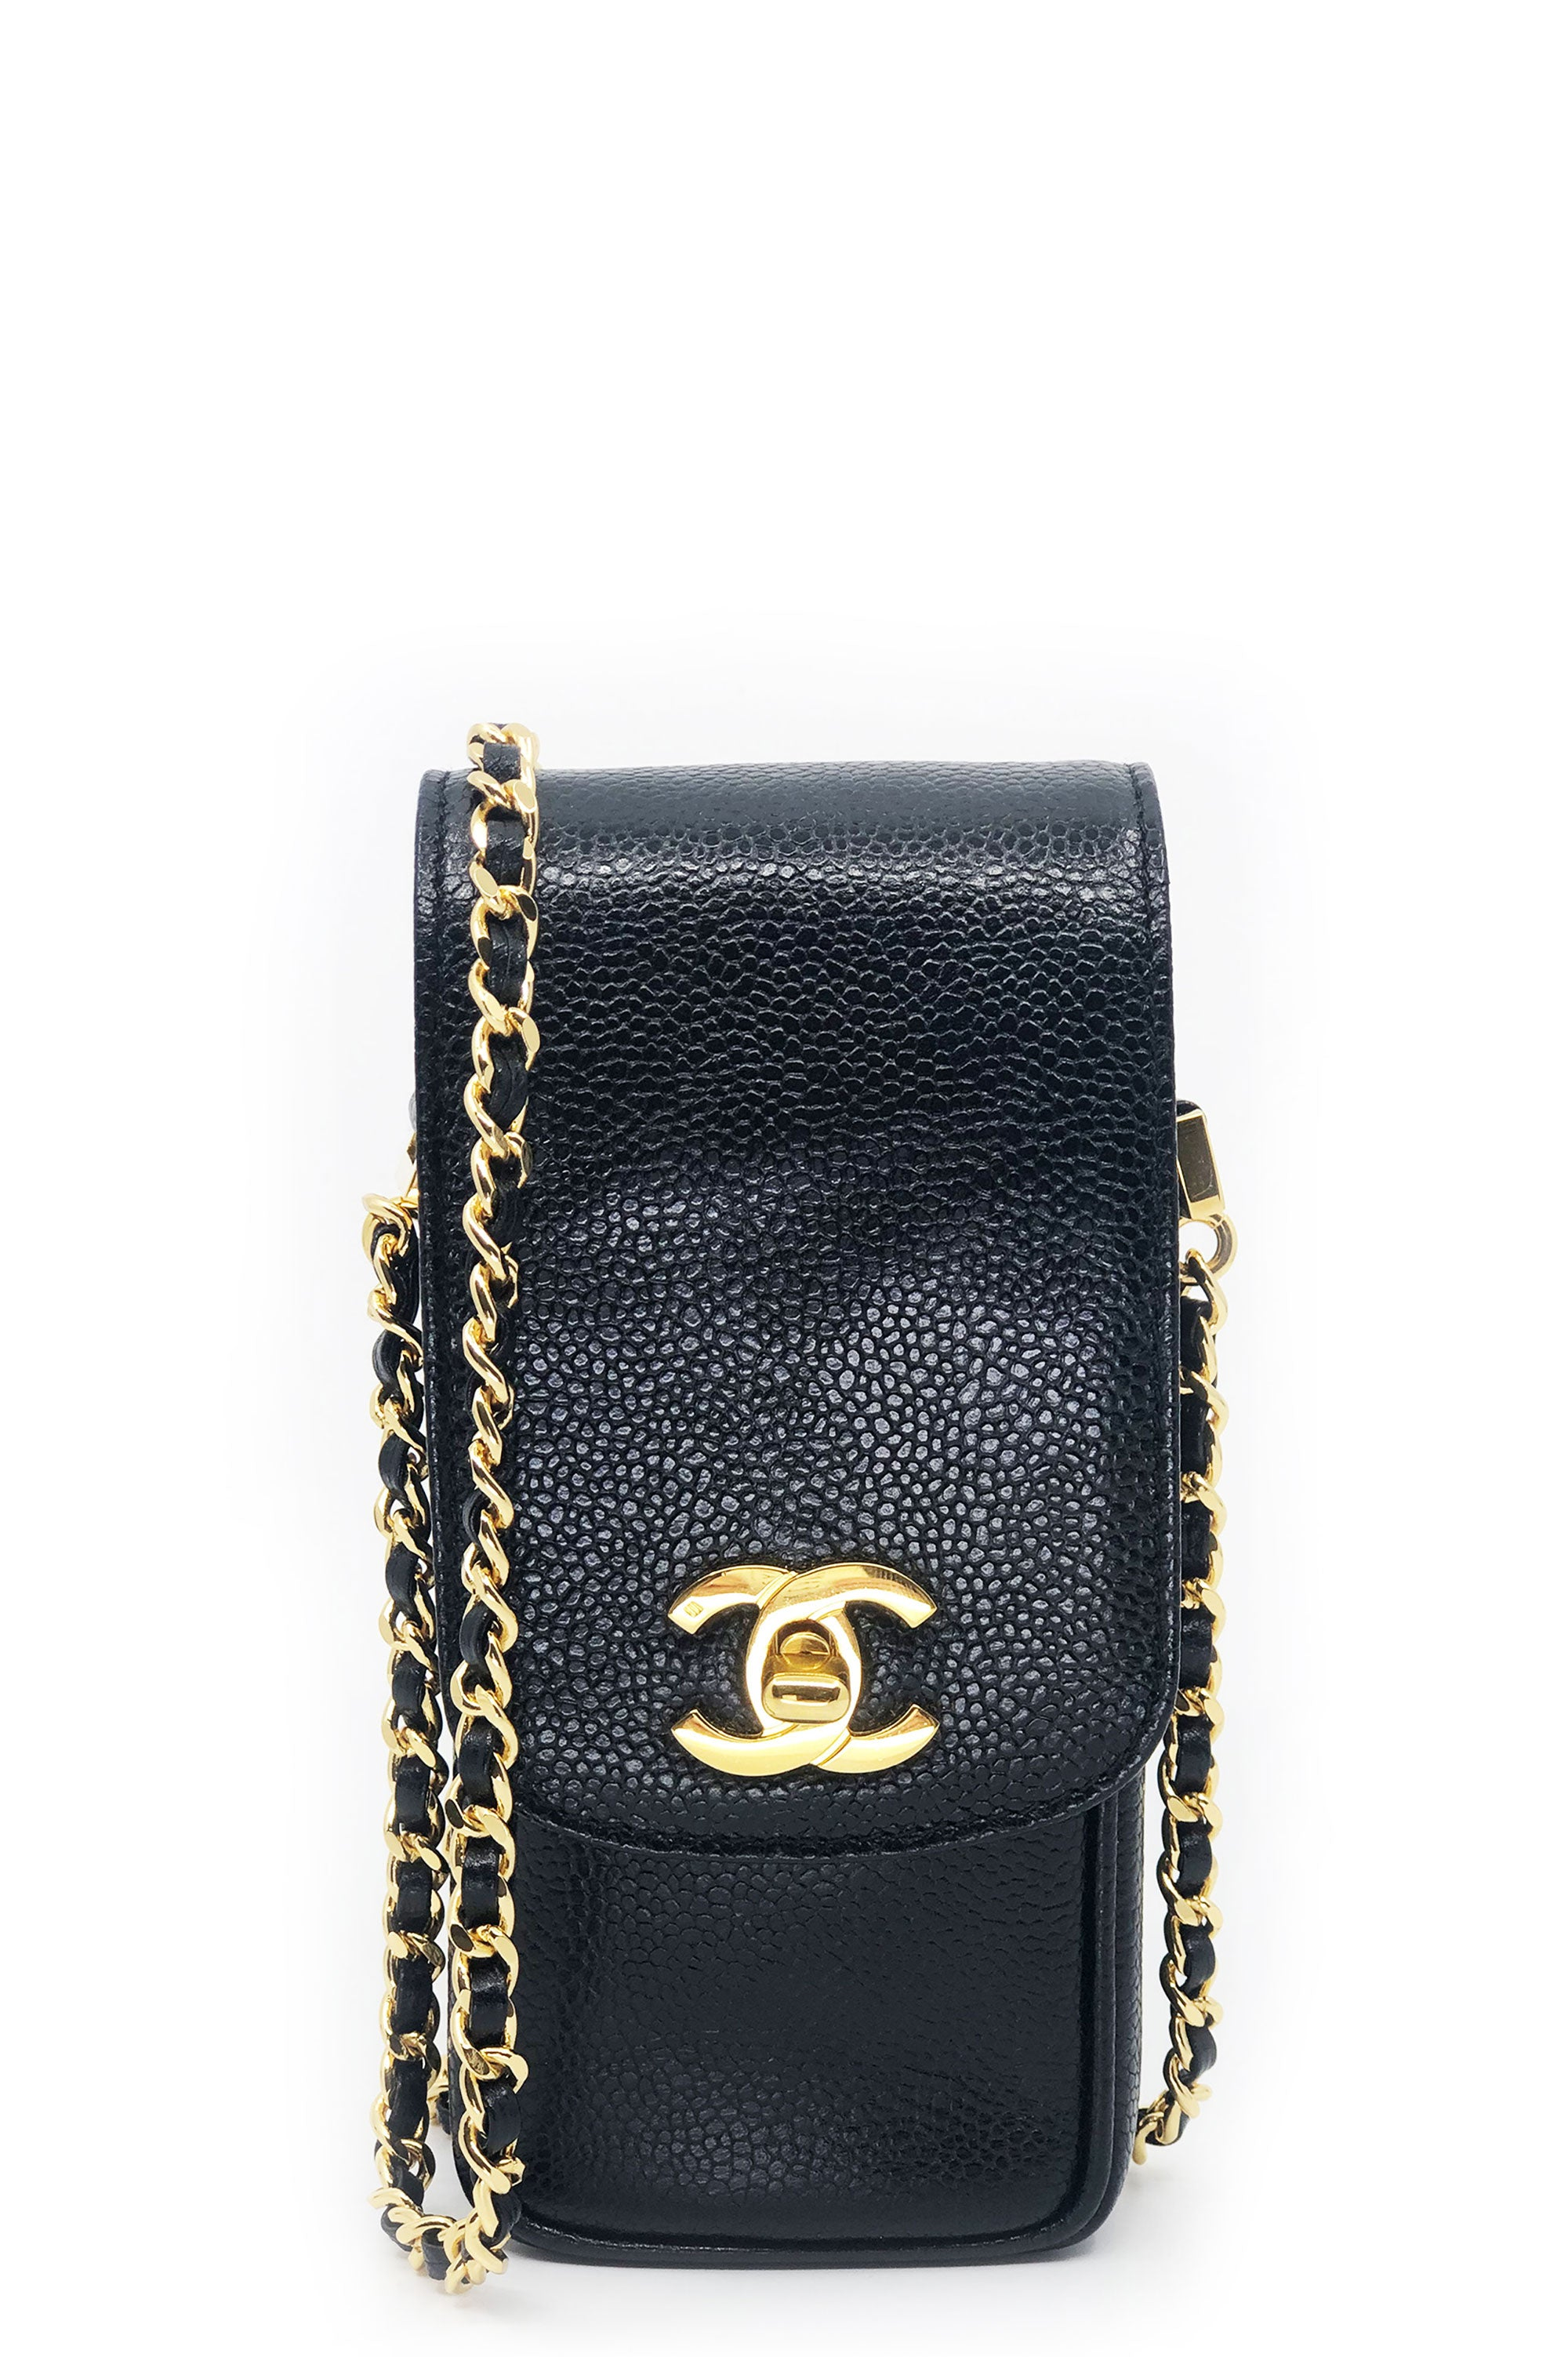 CHANEL Vintage Phone Case